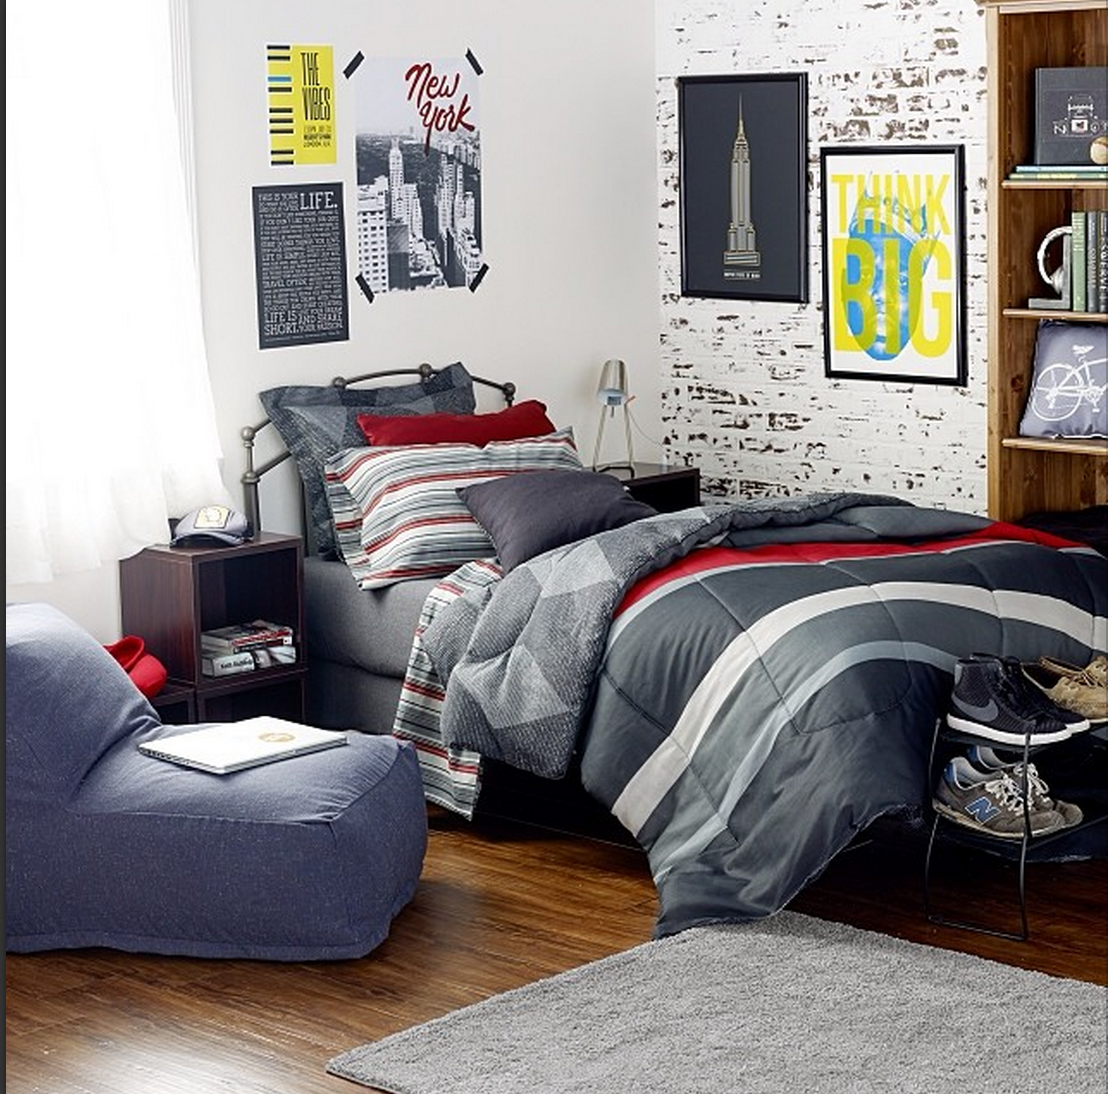 dormify for guys love this dormified dorm room for your urban laid back guy check out our. Black Bedroom Furniture Sets. Home Design Ideas